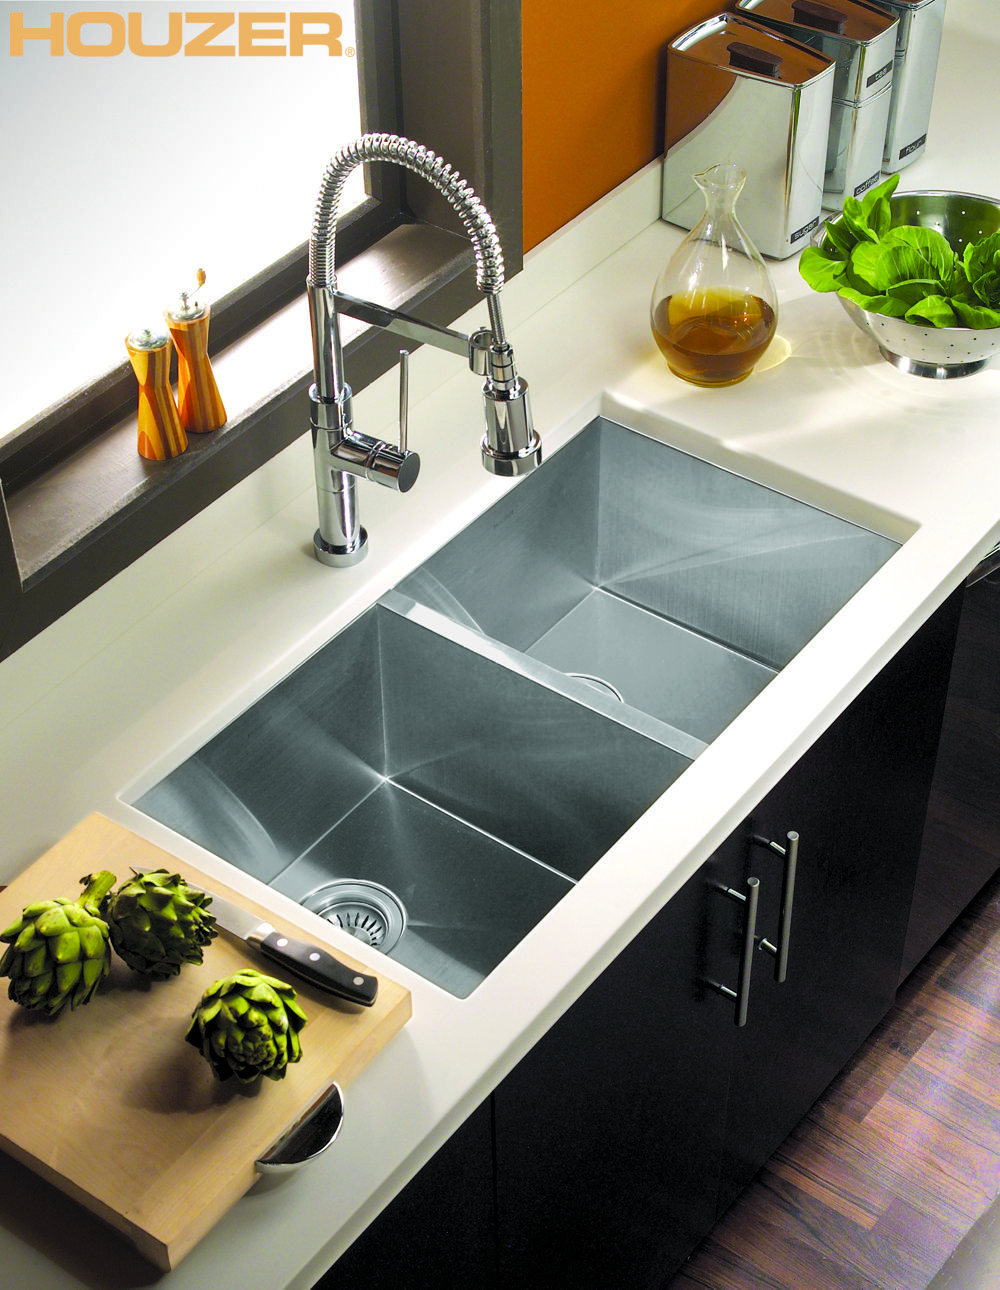 Looking for double basin sinks? To get beautifully designed sinks ...